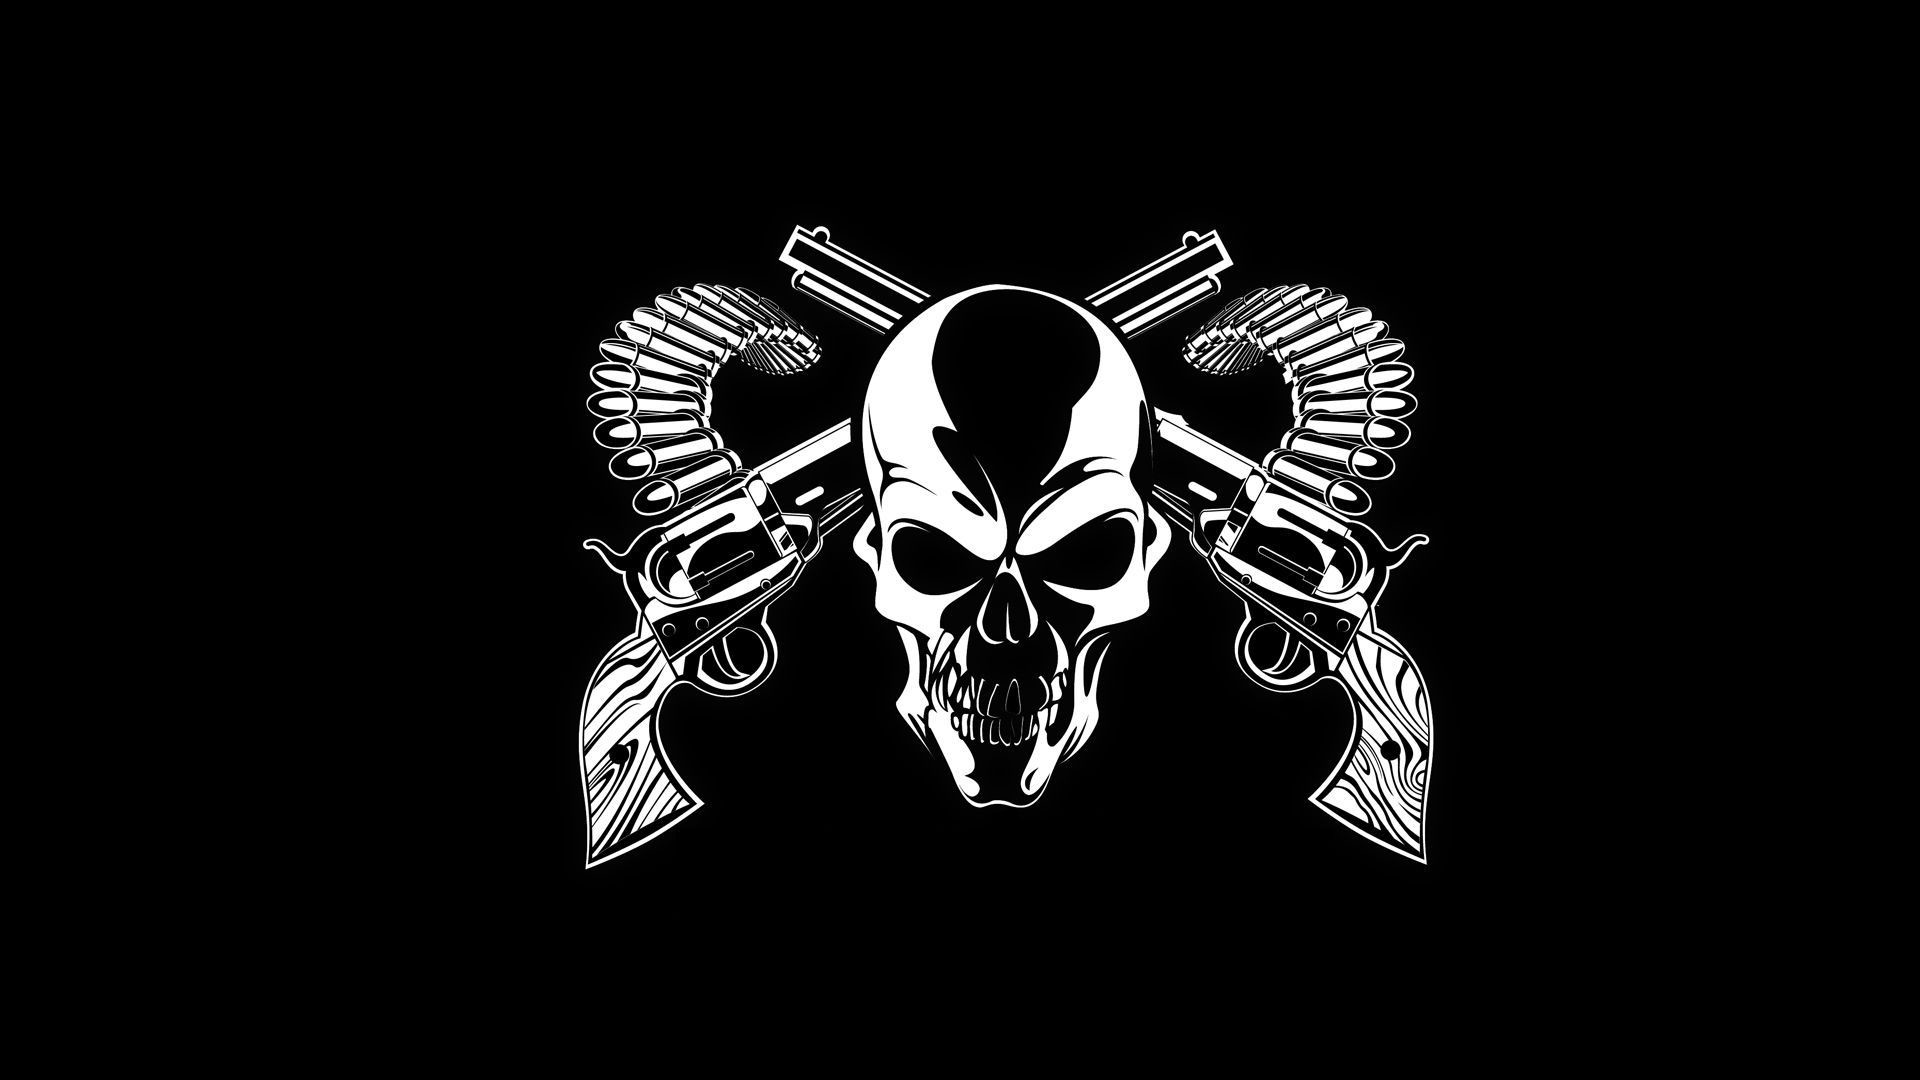 1920x1080 Skull Wallpapers Free Download - HD Wallpapers , Picture ,Background  ,Photos ,Image - Free HQ Wallpaper - HD Wallpaper PC | Pinterest | Skull  wallpaper, ...